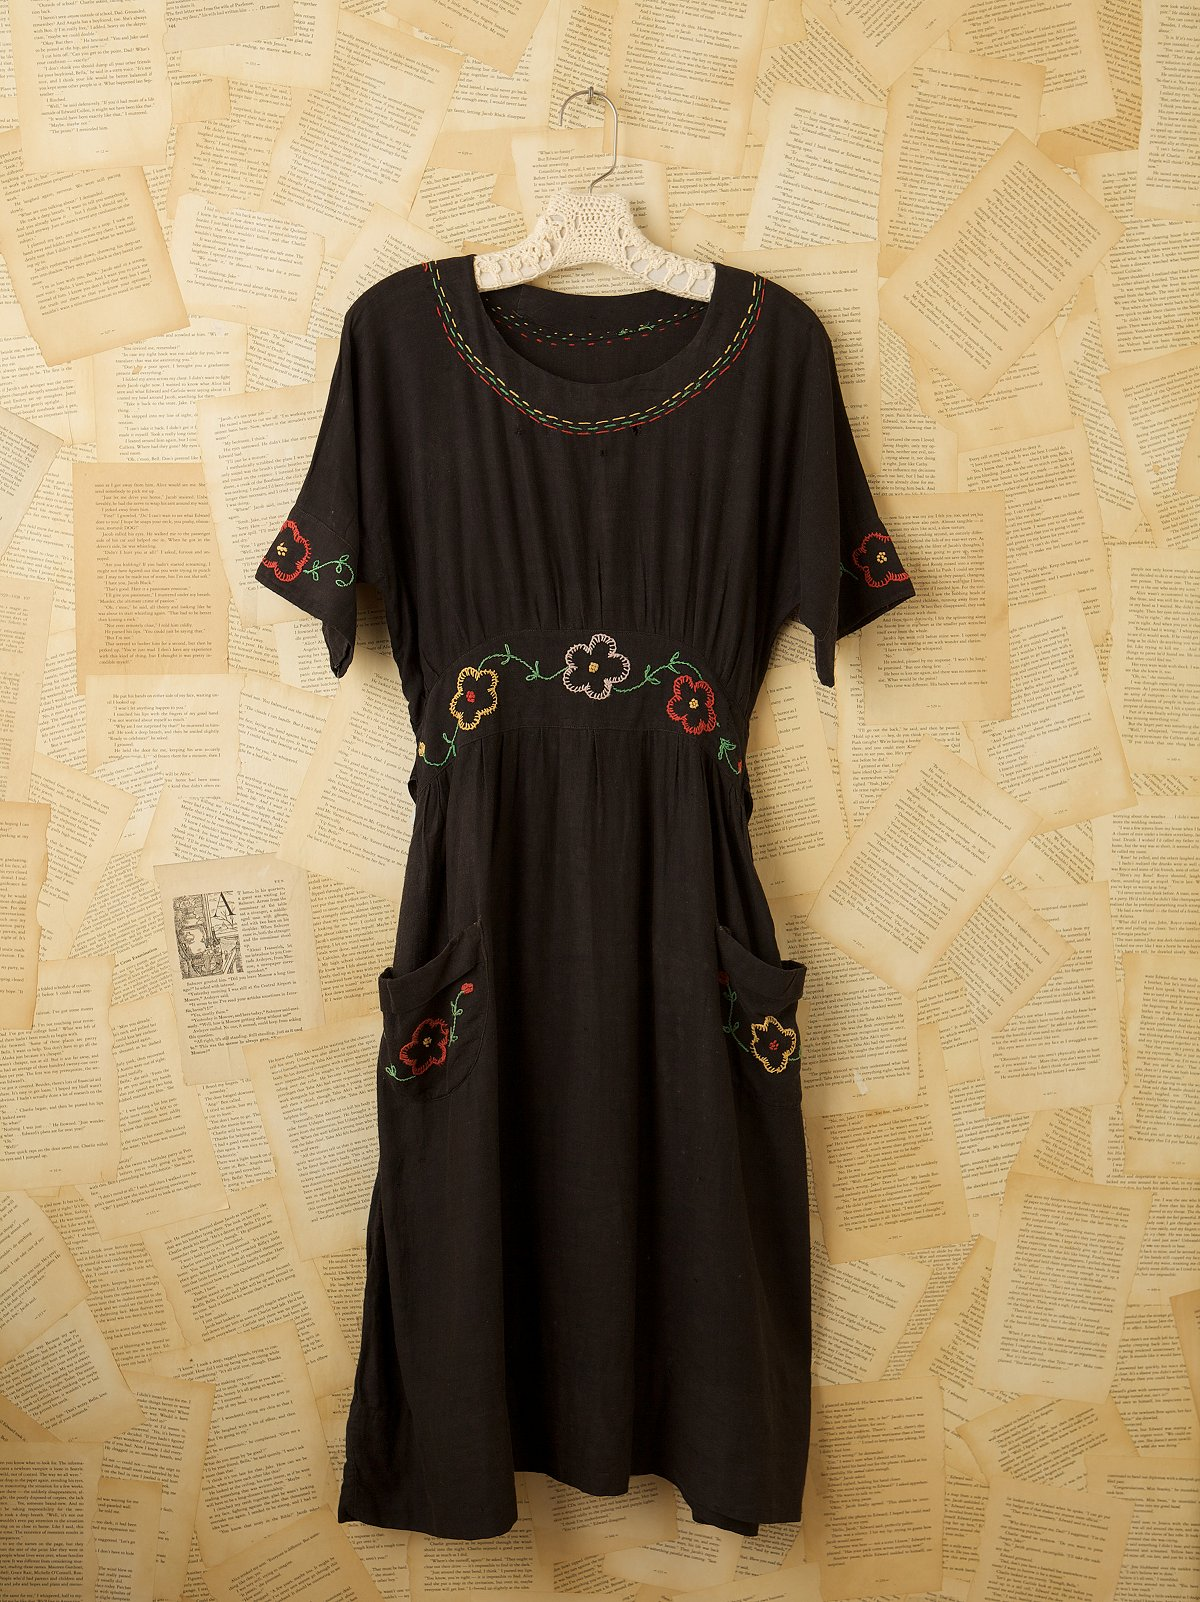 Vintage Black Cotton Embroidered Dress